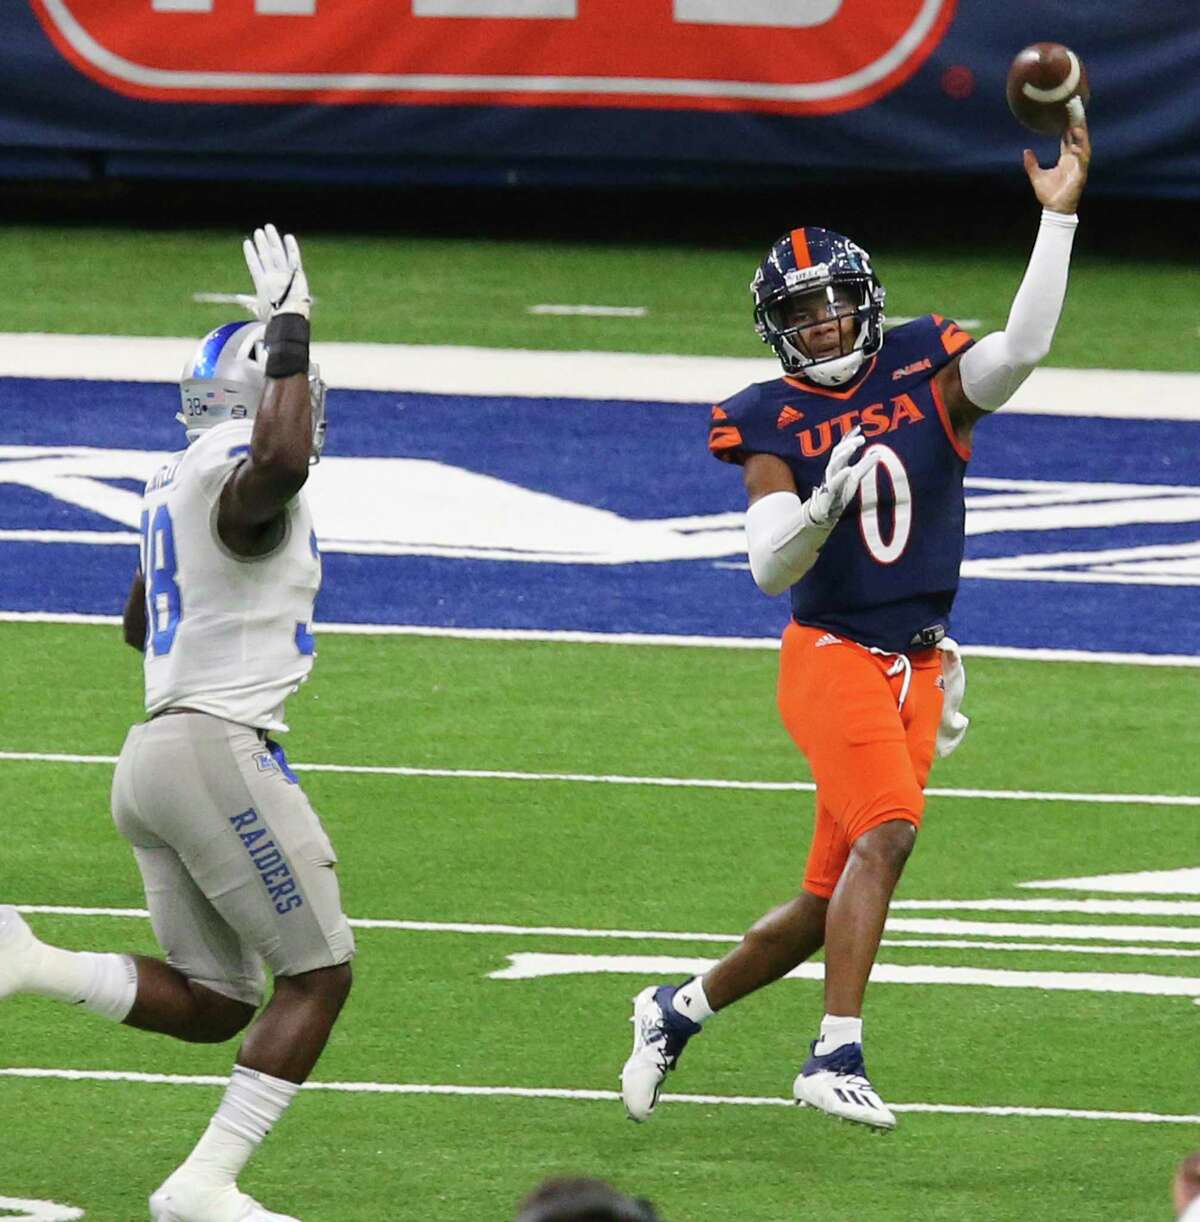 UTSA quarterback Frank Harris (0) makes a pass attempt against Middle Tennessee's Johnathan Butler (38) during their game at the Alamodome on Friday, Sept. 25, 2020.